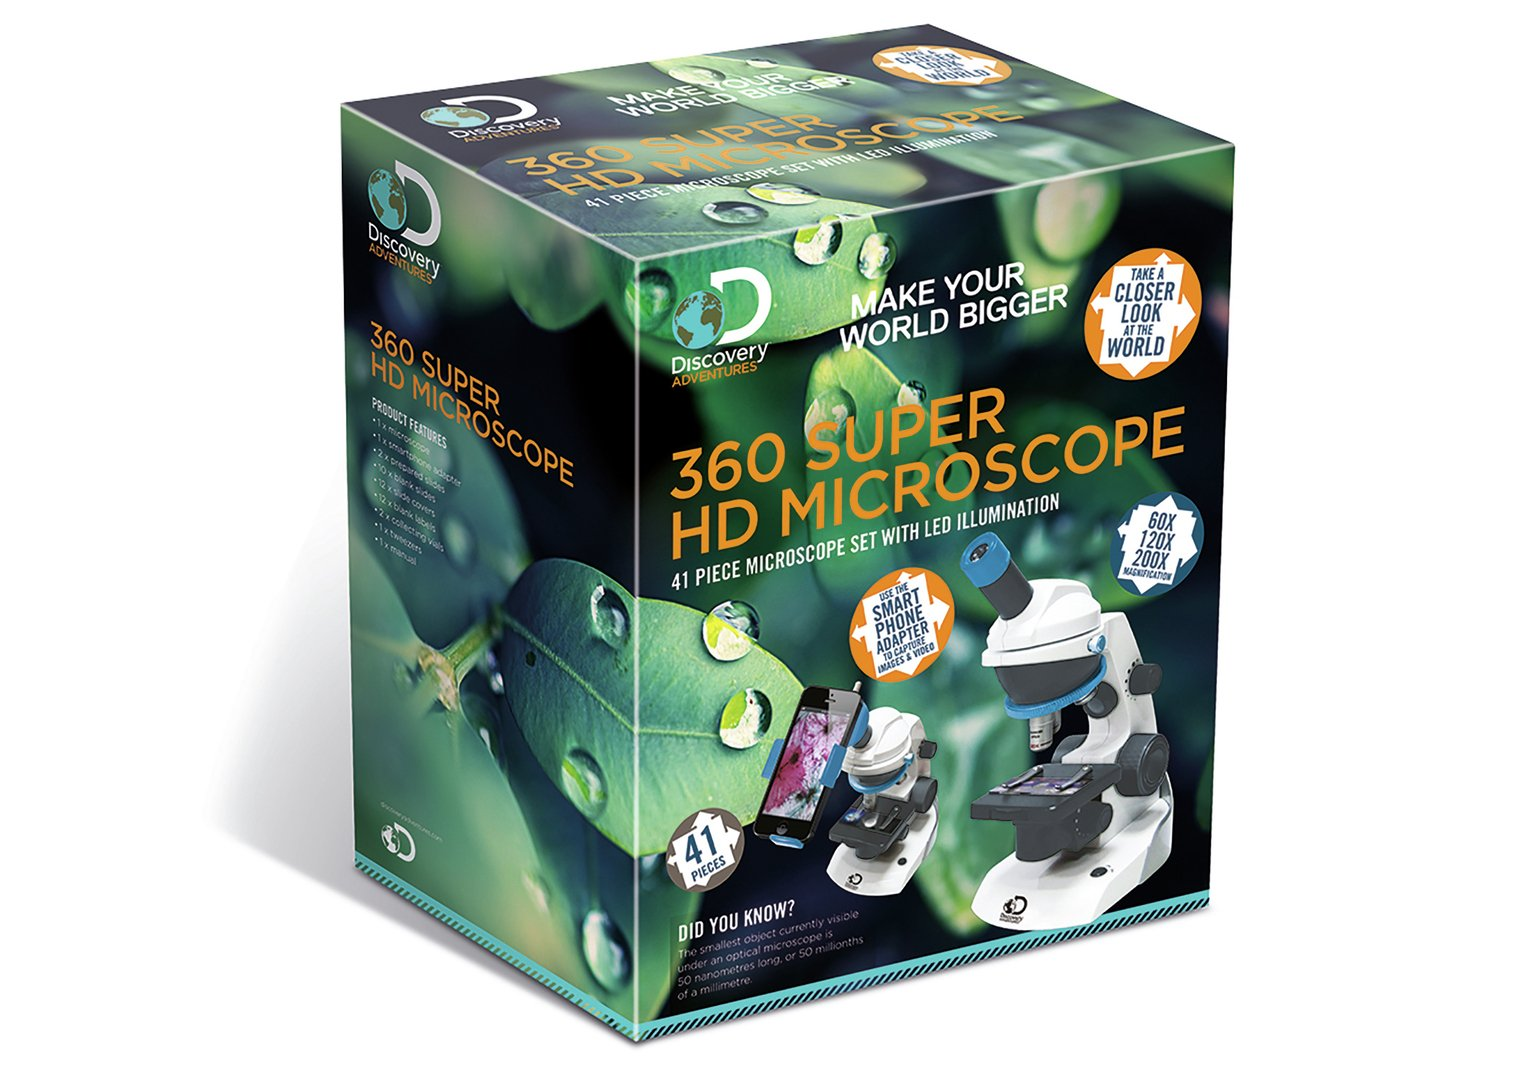 Image of Discovery 360 Super HD Microscope.